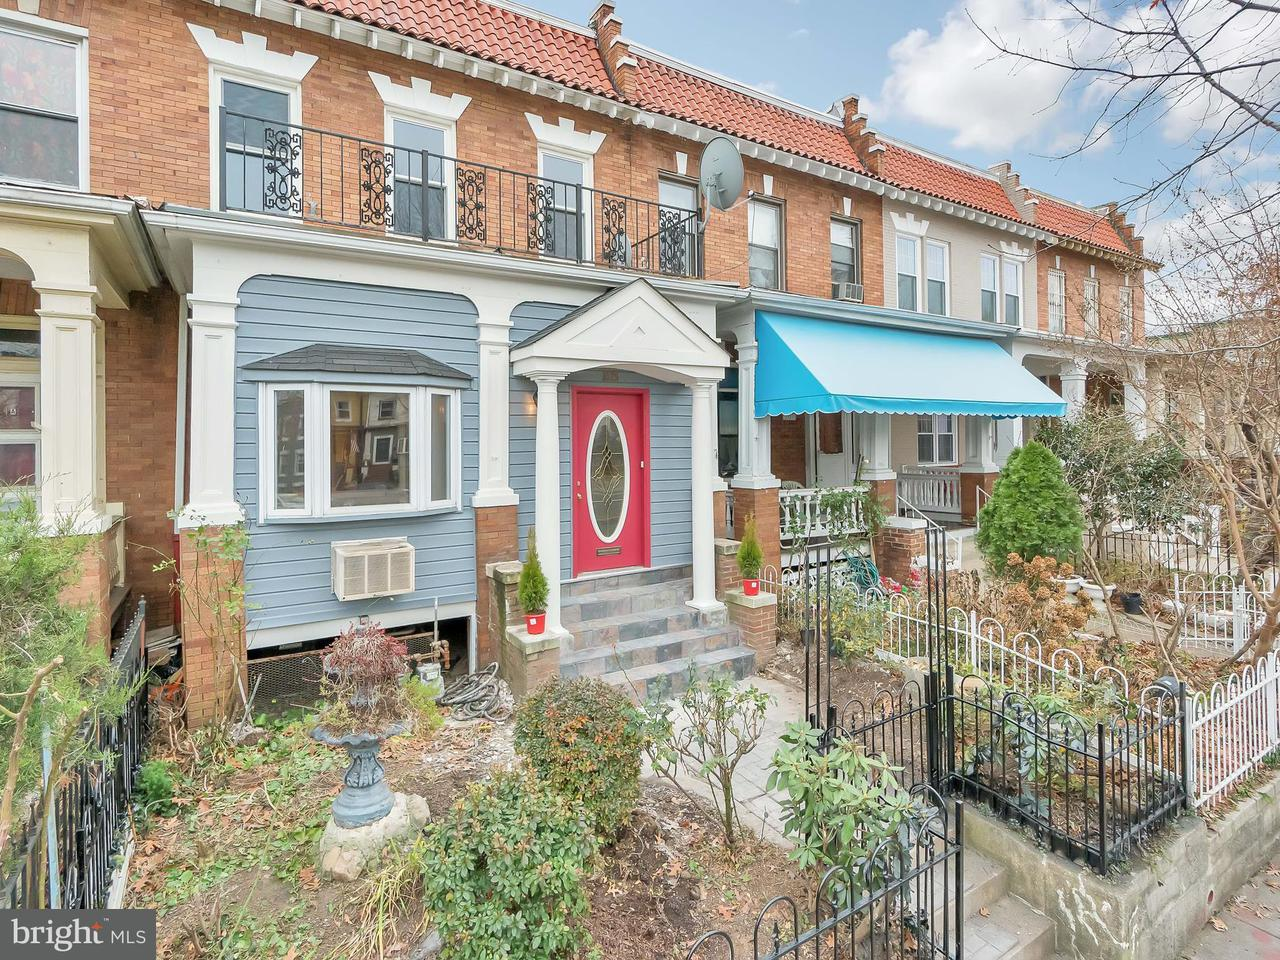 Townhouse for Sale at 3529 New Hampshire Ave Nw 3529 New Hampshire Ave Nw Washington, District Of Columbia 20010 United States